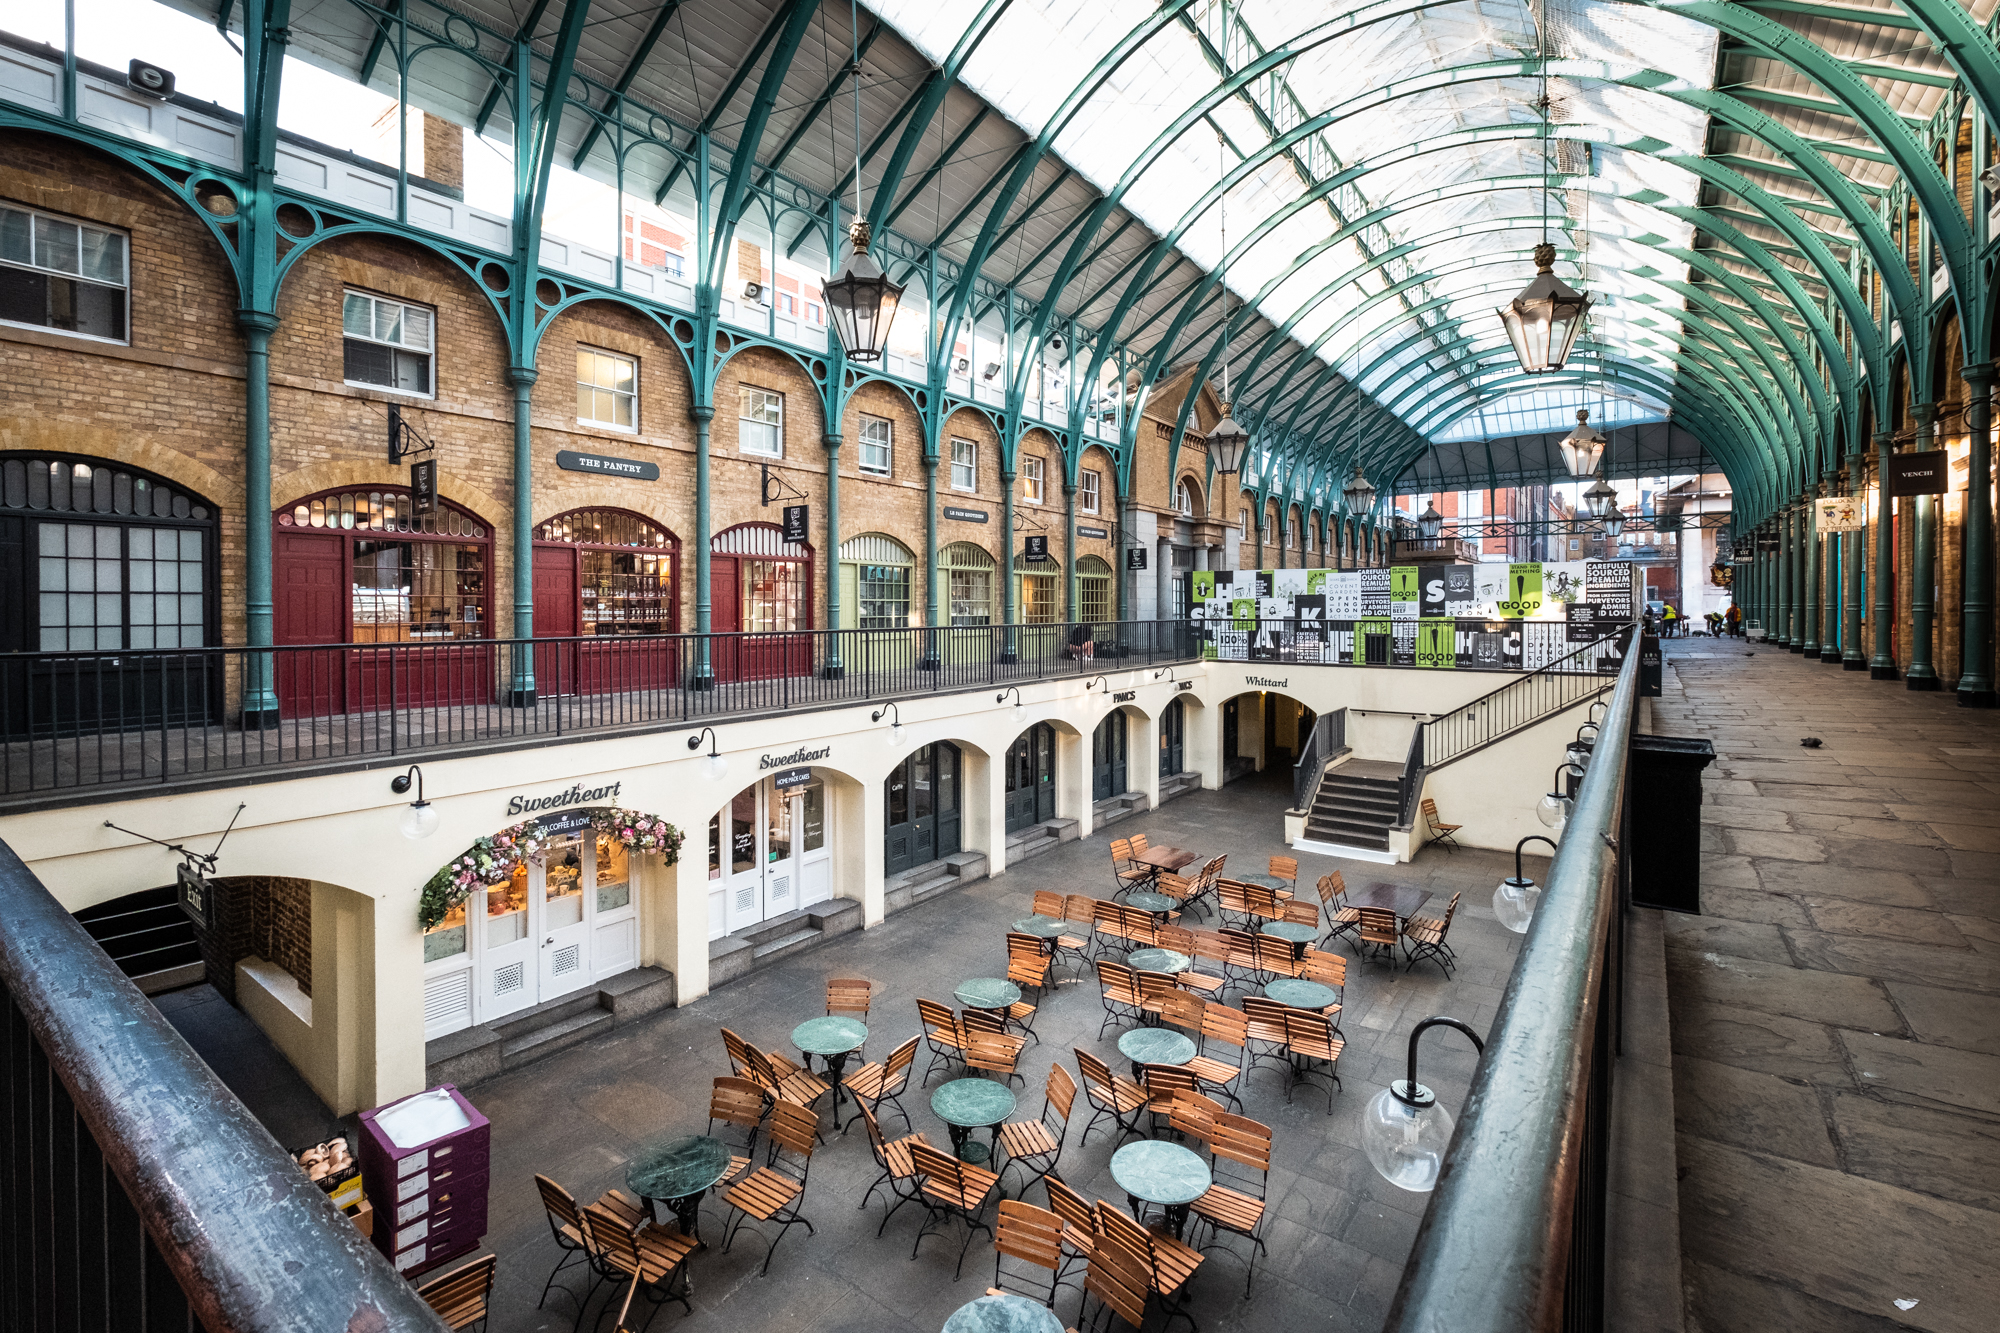 A photo of The Market Building architecture, Covent Garden, London taken by Trevor Sherwin